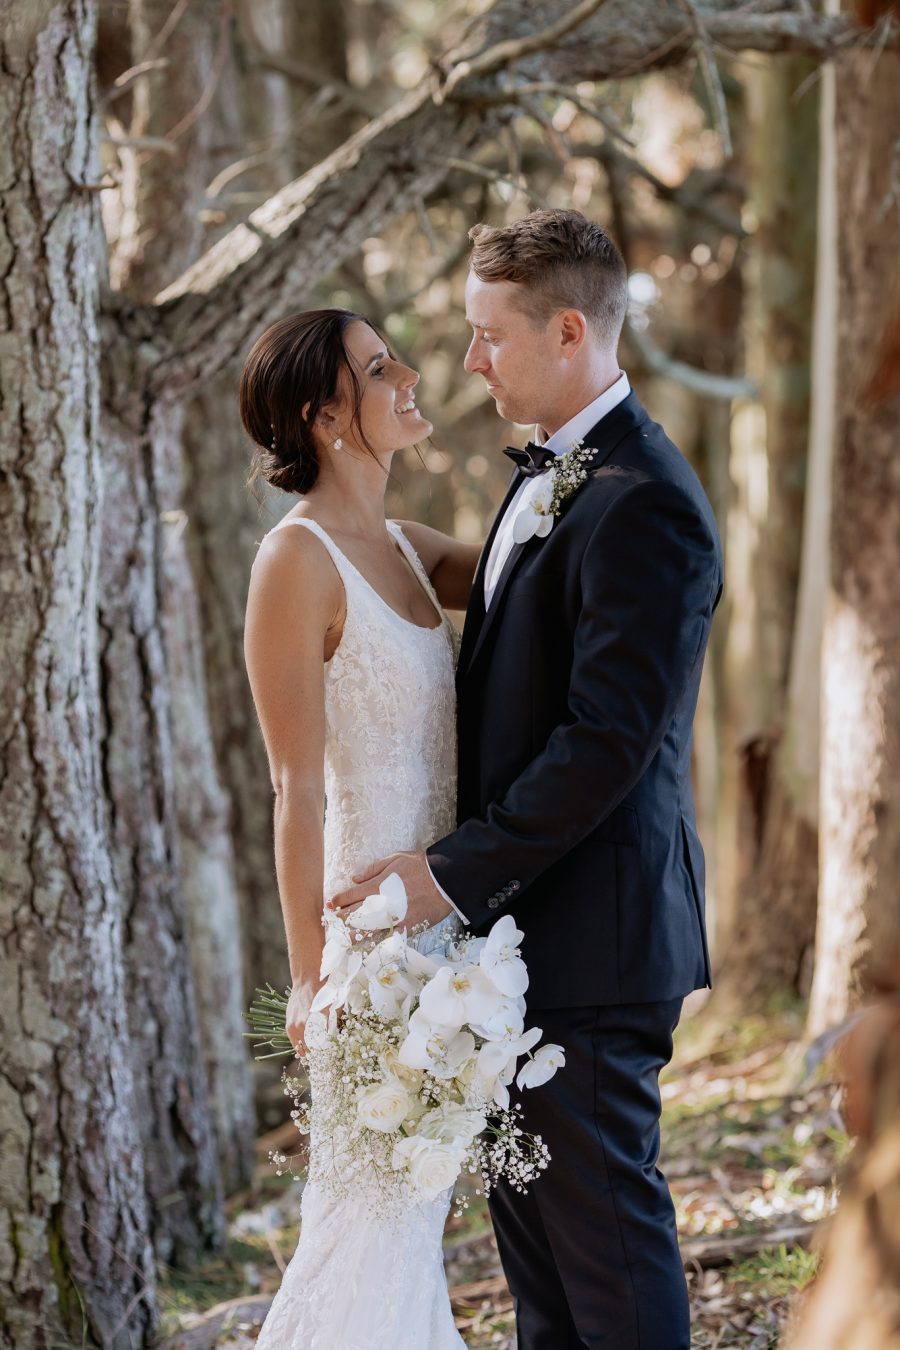 Bridal couple looking at each other in tree tunnel